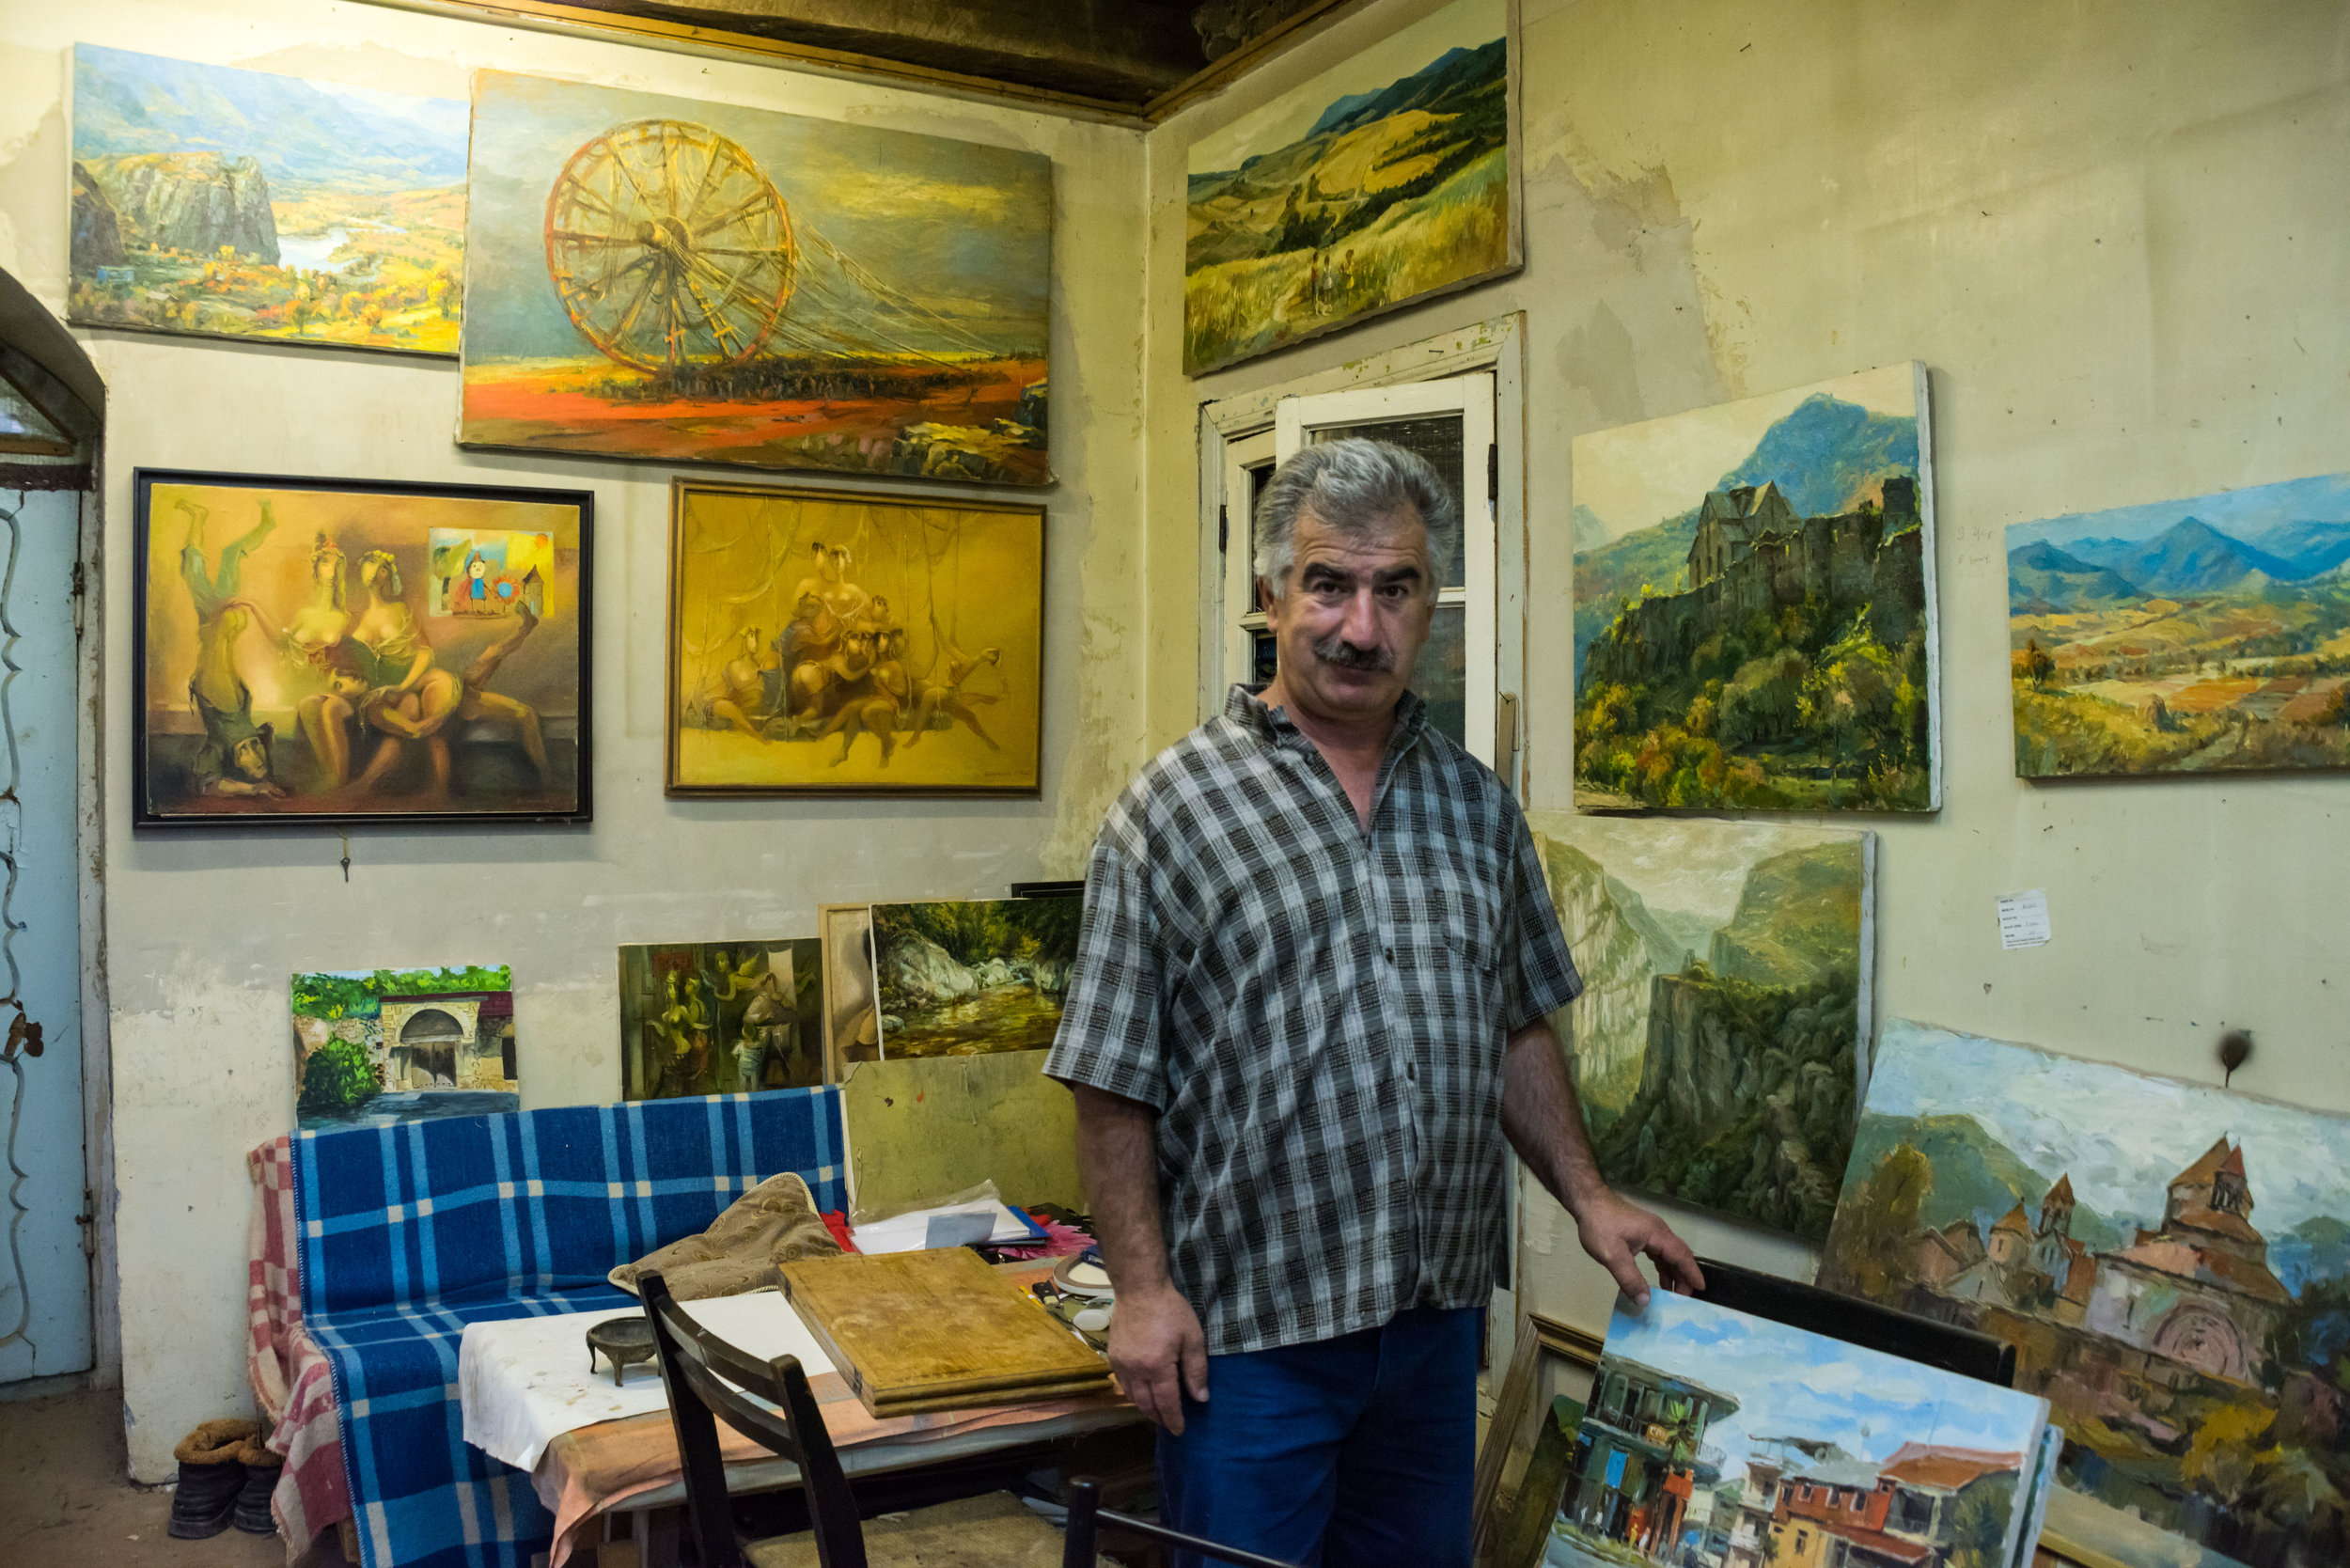 Painter Hovik Gasparyan in his Shushi studio.  His landscapes capture the soul of the Armenian lands, while his modernist work is rich with social and political commentary.